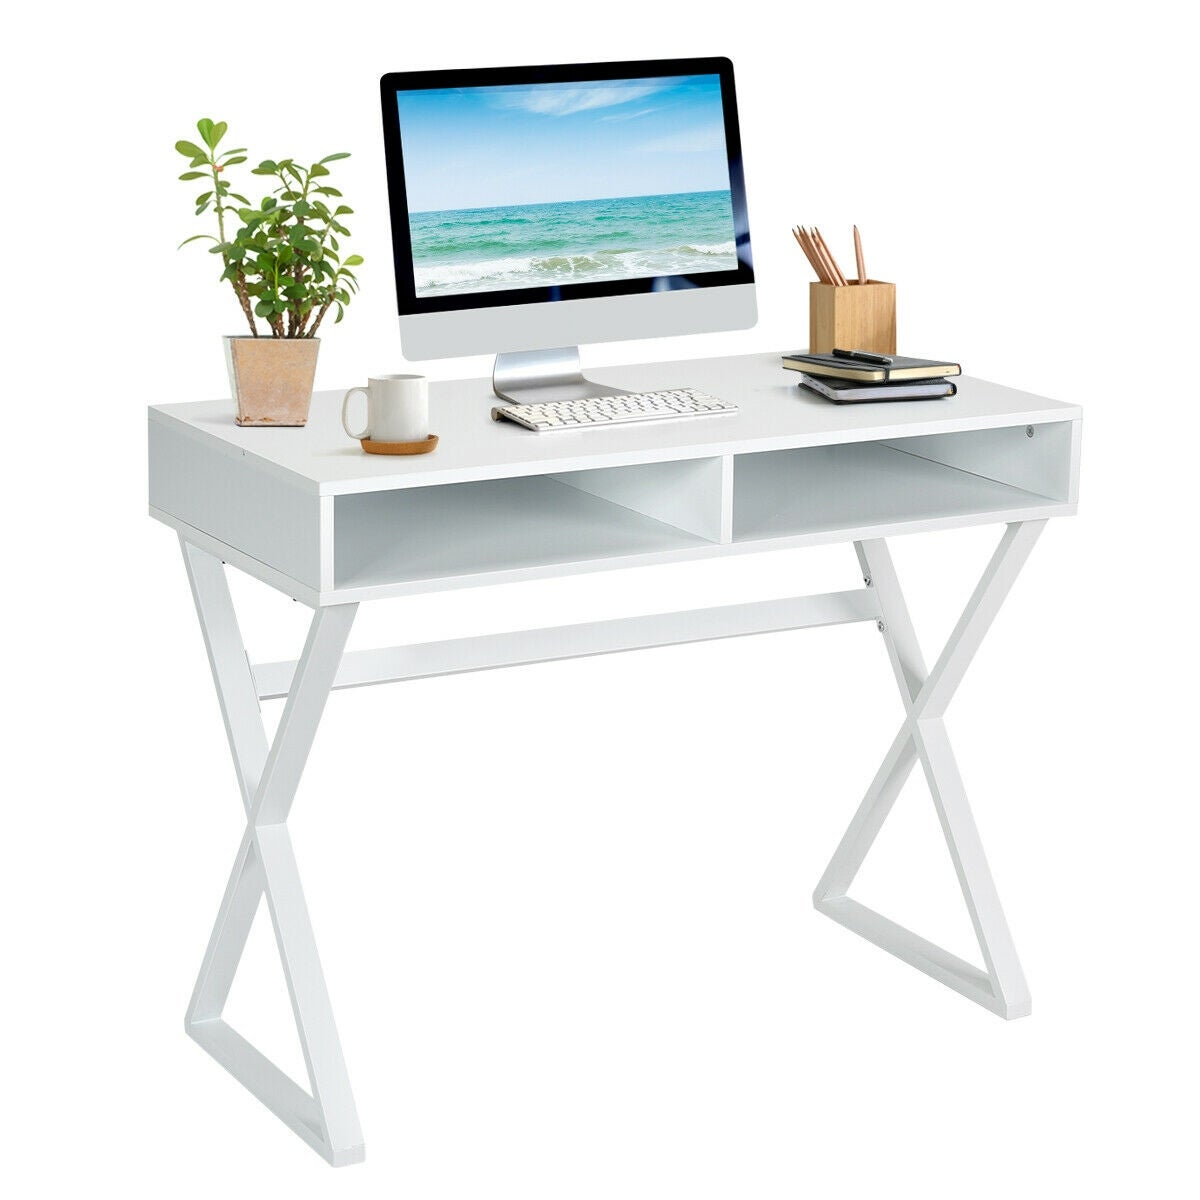 Gymax Modern Computer Desk Writing Makeup Vanity Table Storage